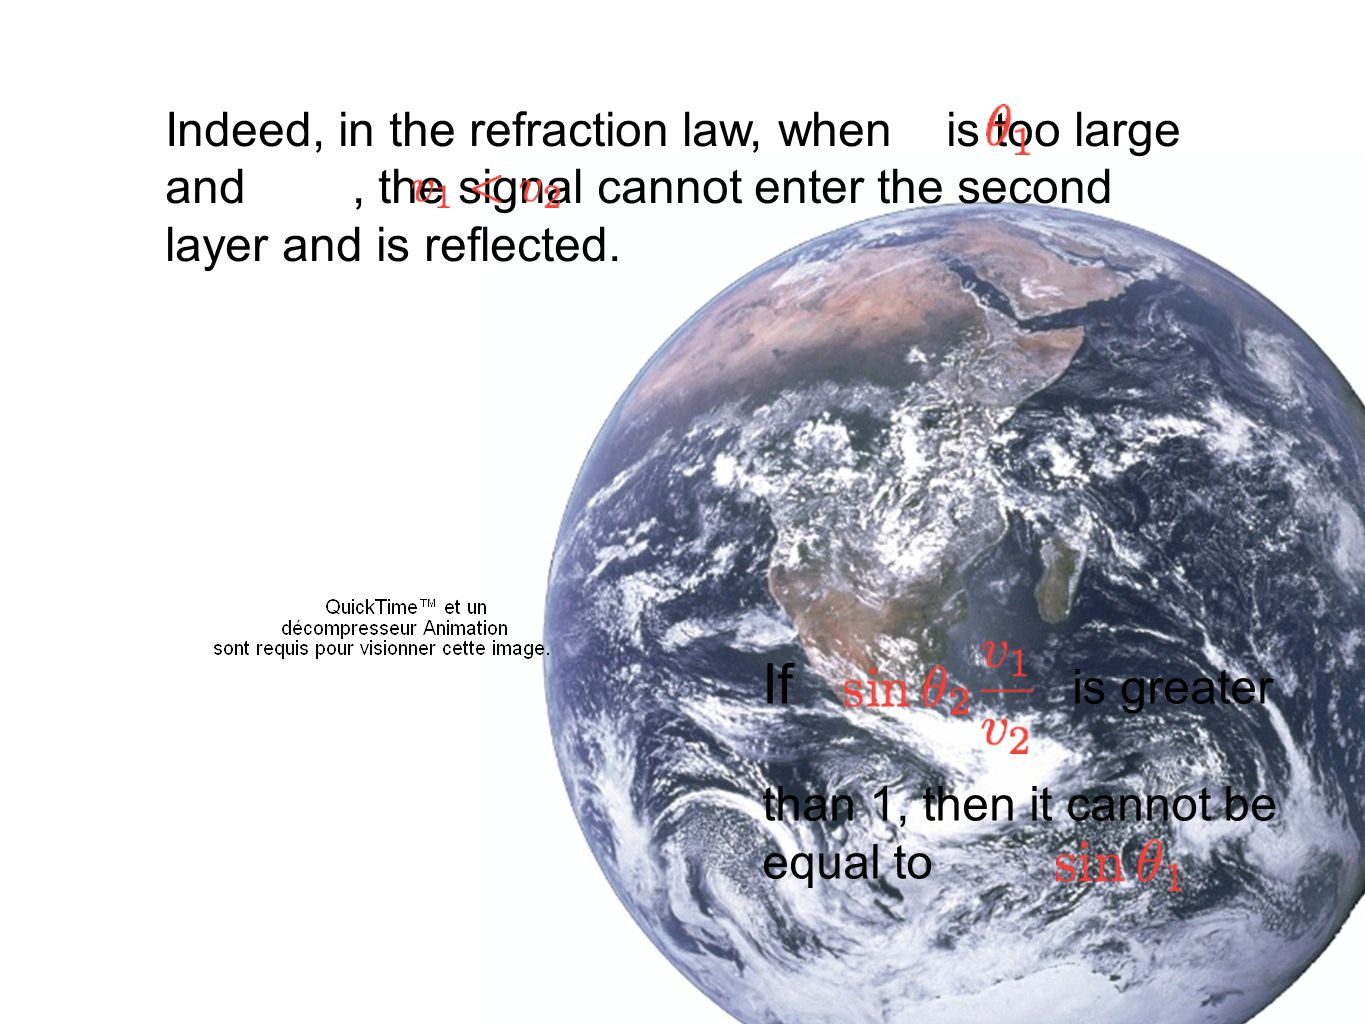 Indeed, in the refraction law, when is too large and, the signal cannot enter the second layer and is reflected.